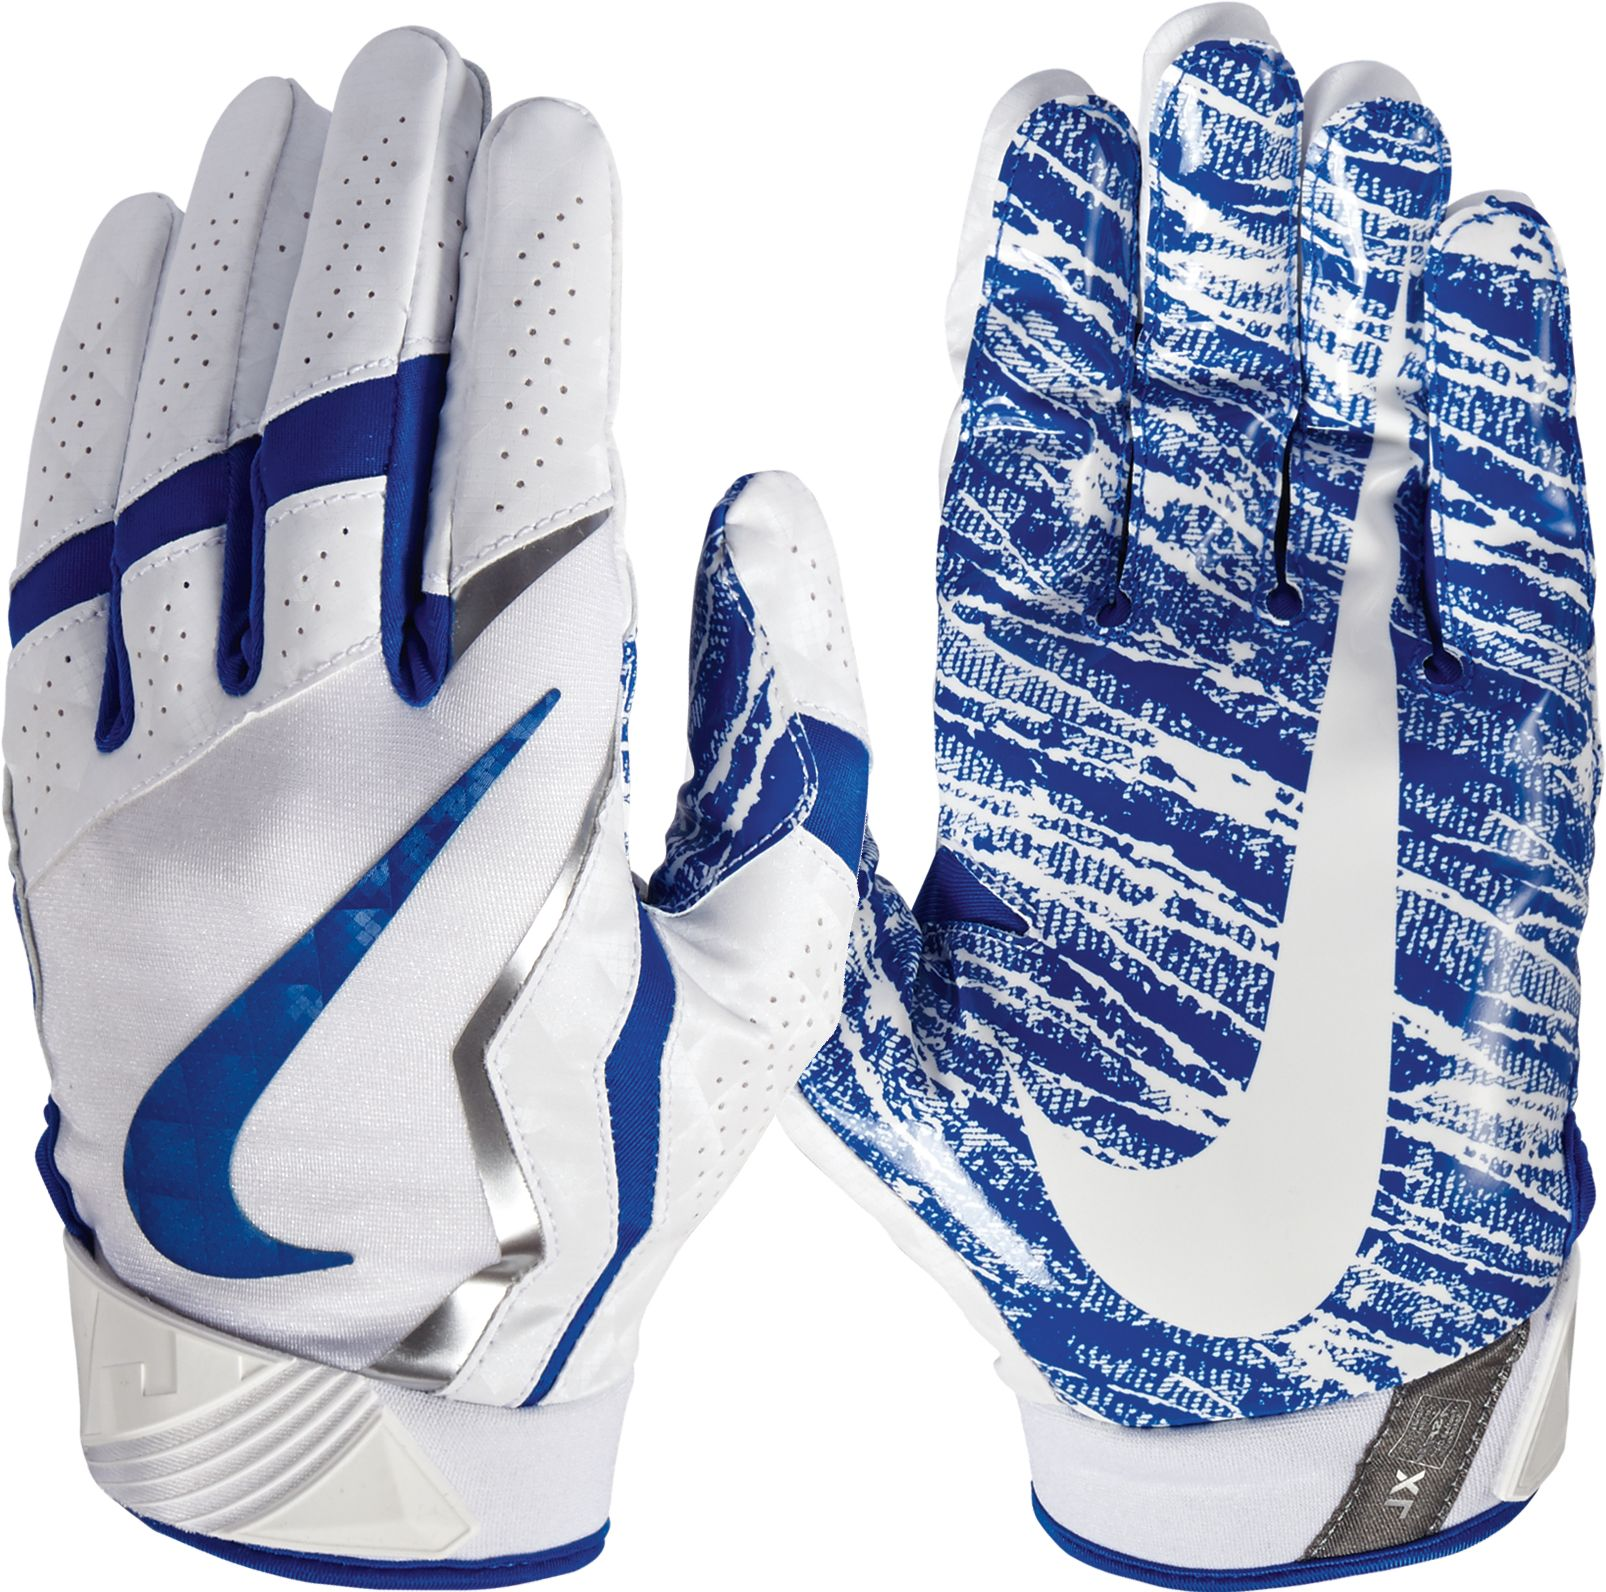 Nike Football Gloves Yellow: Nike Football Wide Receiver Gloves